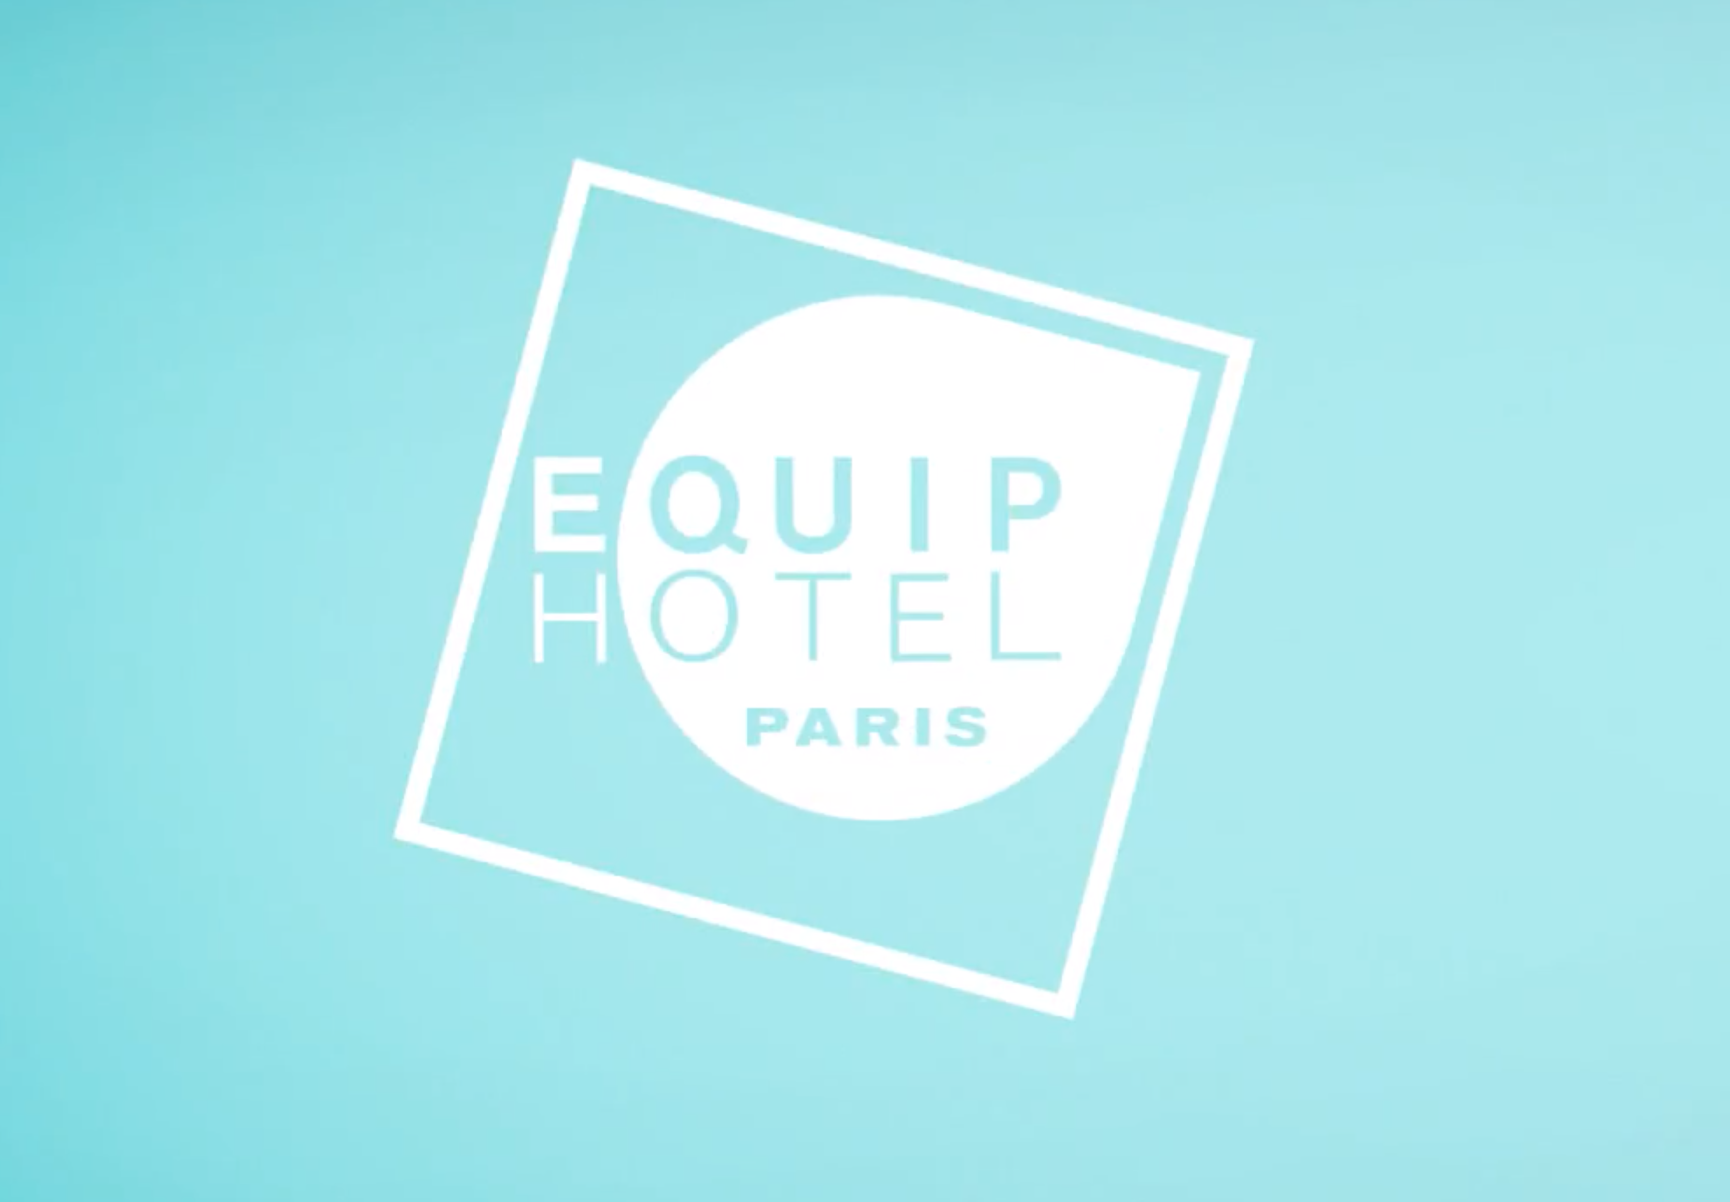 EquipHotel Paris, Paris Events, Events 2018, EquipHotel, EquipHotel Paris 2018 equiphotel An Insider's Guide for EquipHotel 2018. Captura de ecr   2018 10 30   s 10